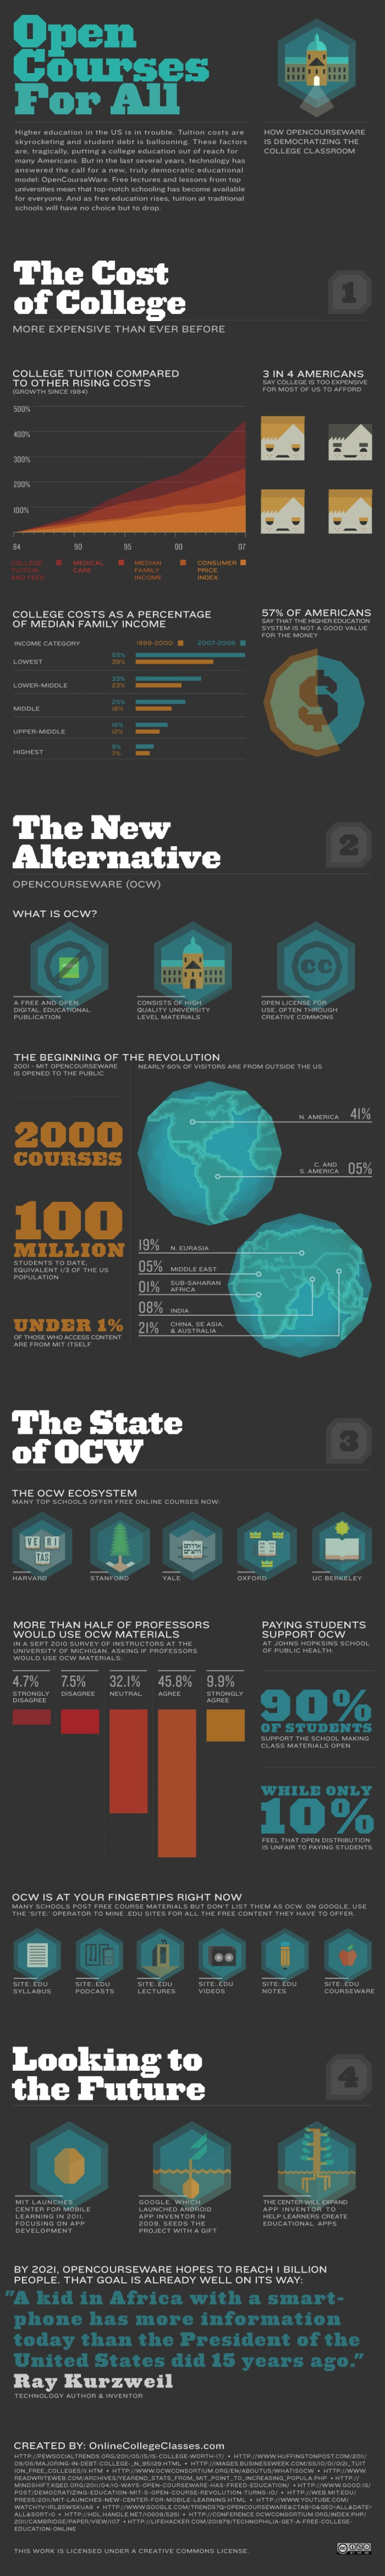 Open Courses For All  Infographic